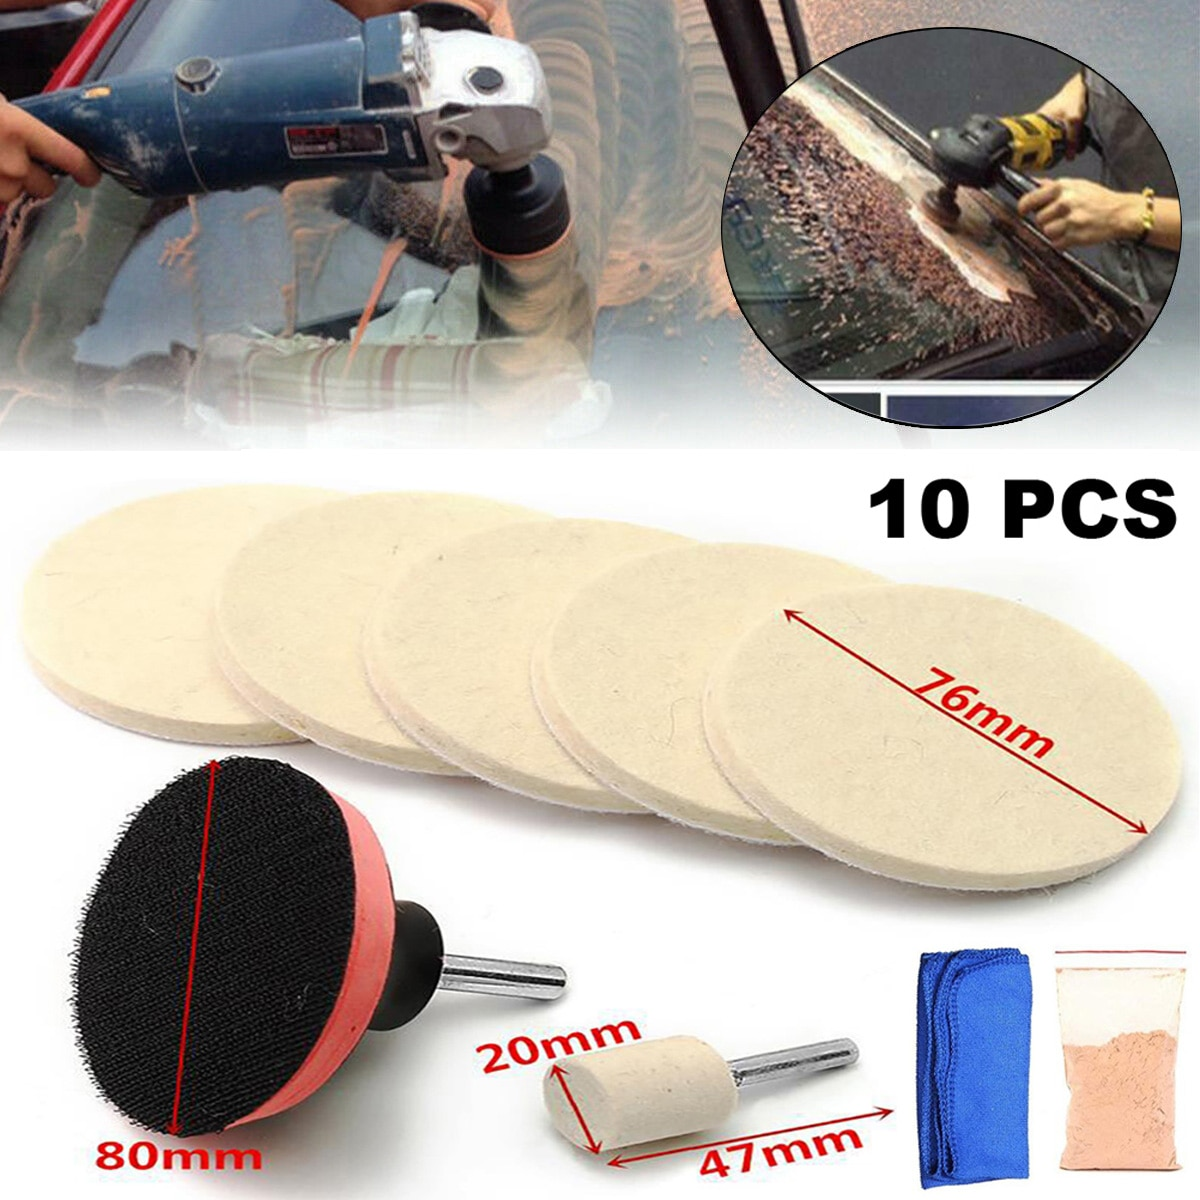 10Pcs car window glass polishing tool kit package windshield scratches car scratch removal tool polishing accessories ossieao new watch glass polishing kit glass scratch removal set acrylic sapphire crystal